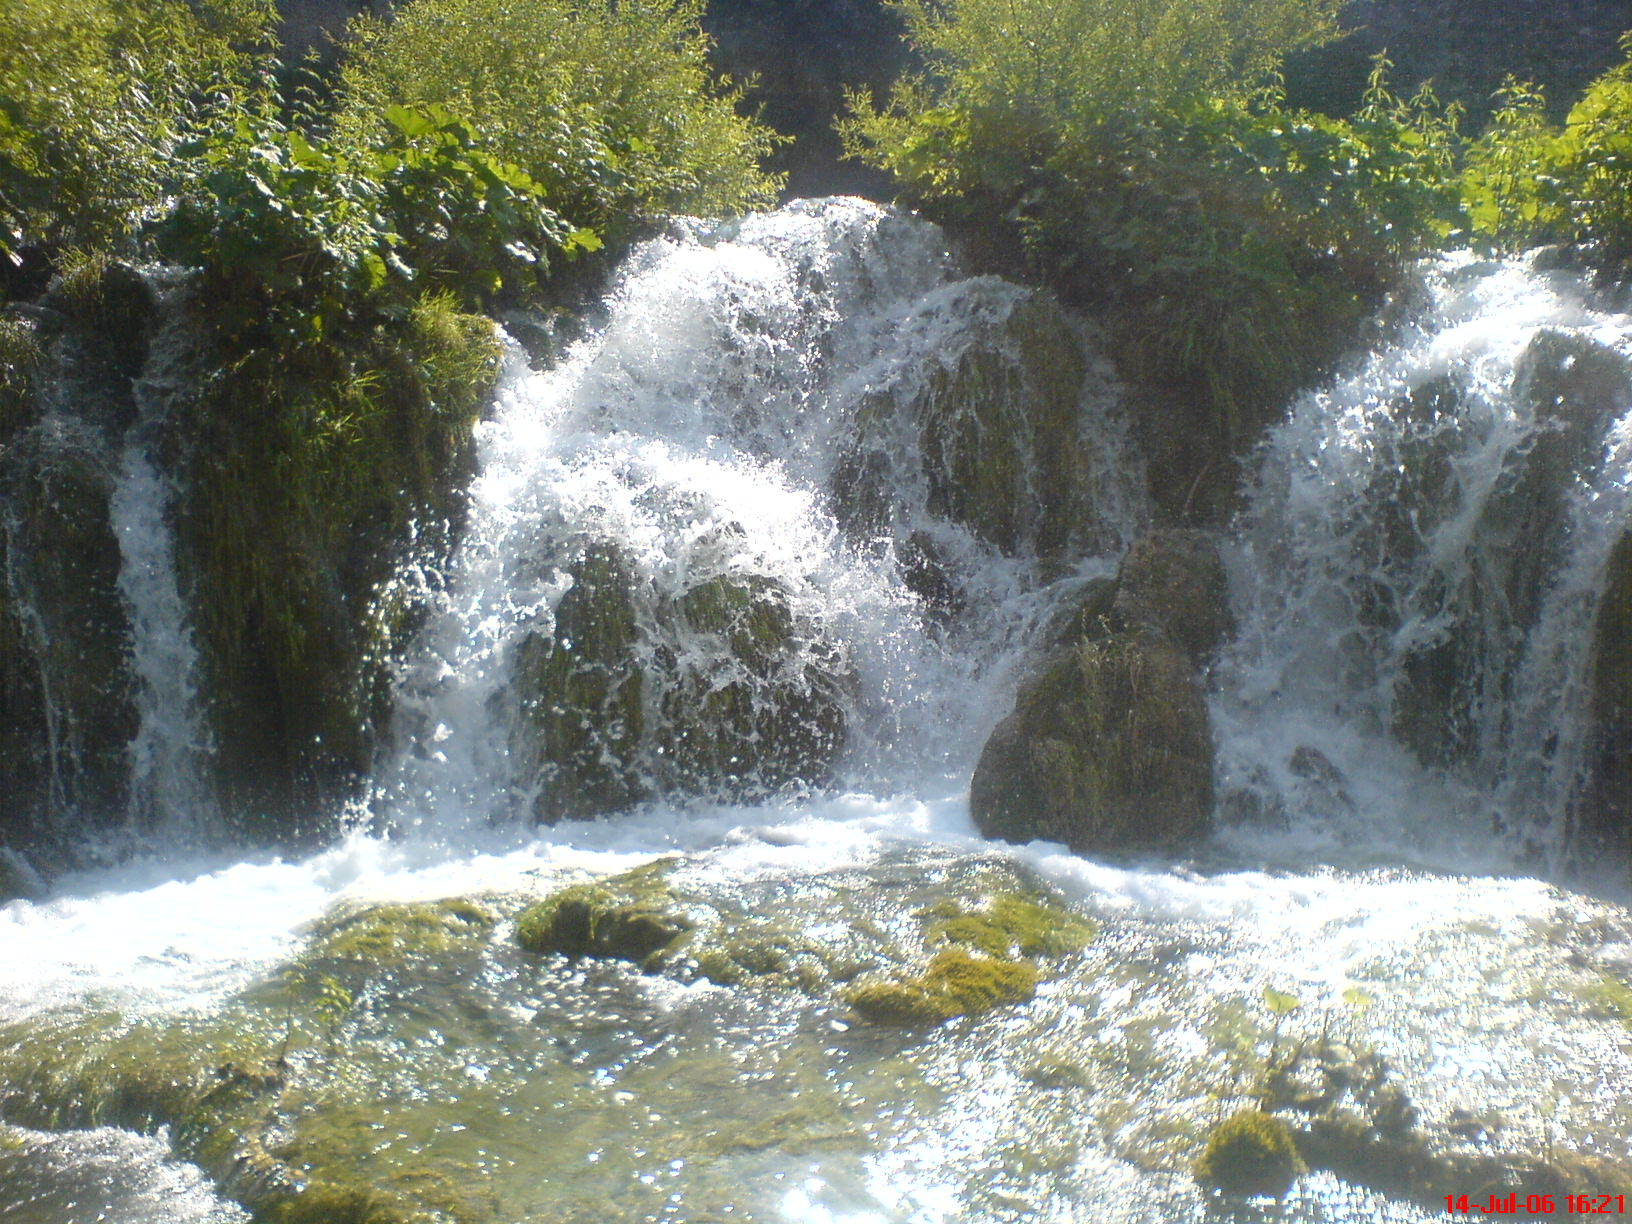 克罗地亚十六湖国家公园(Plitvice Lakes National Park) - wuwei1101 - 西花社